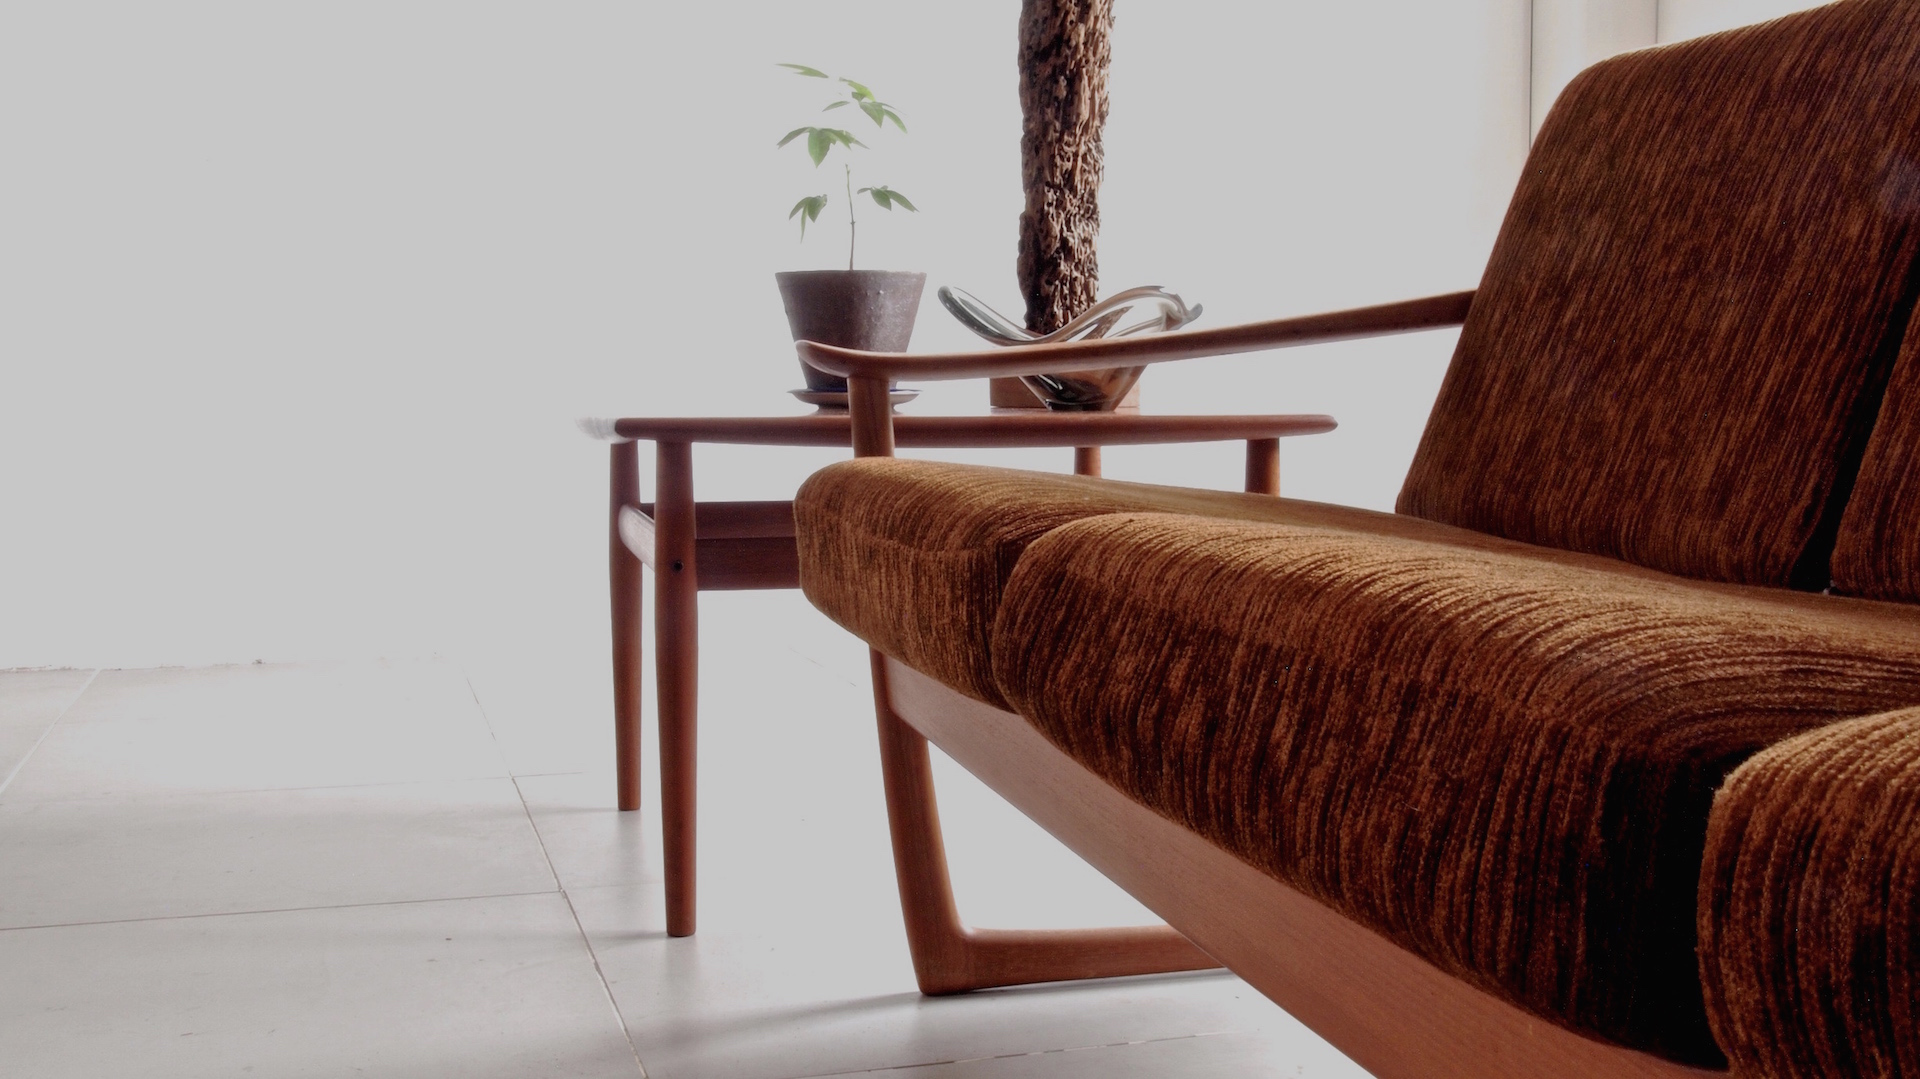 Coffee table by Grete Jalk